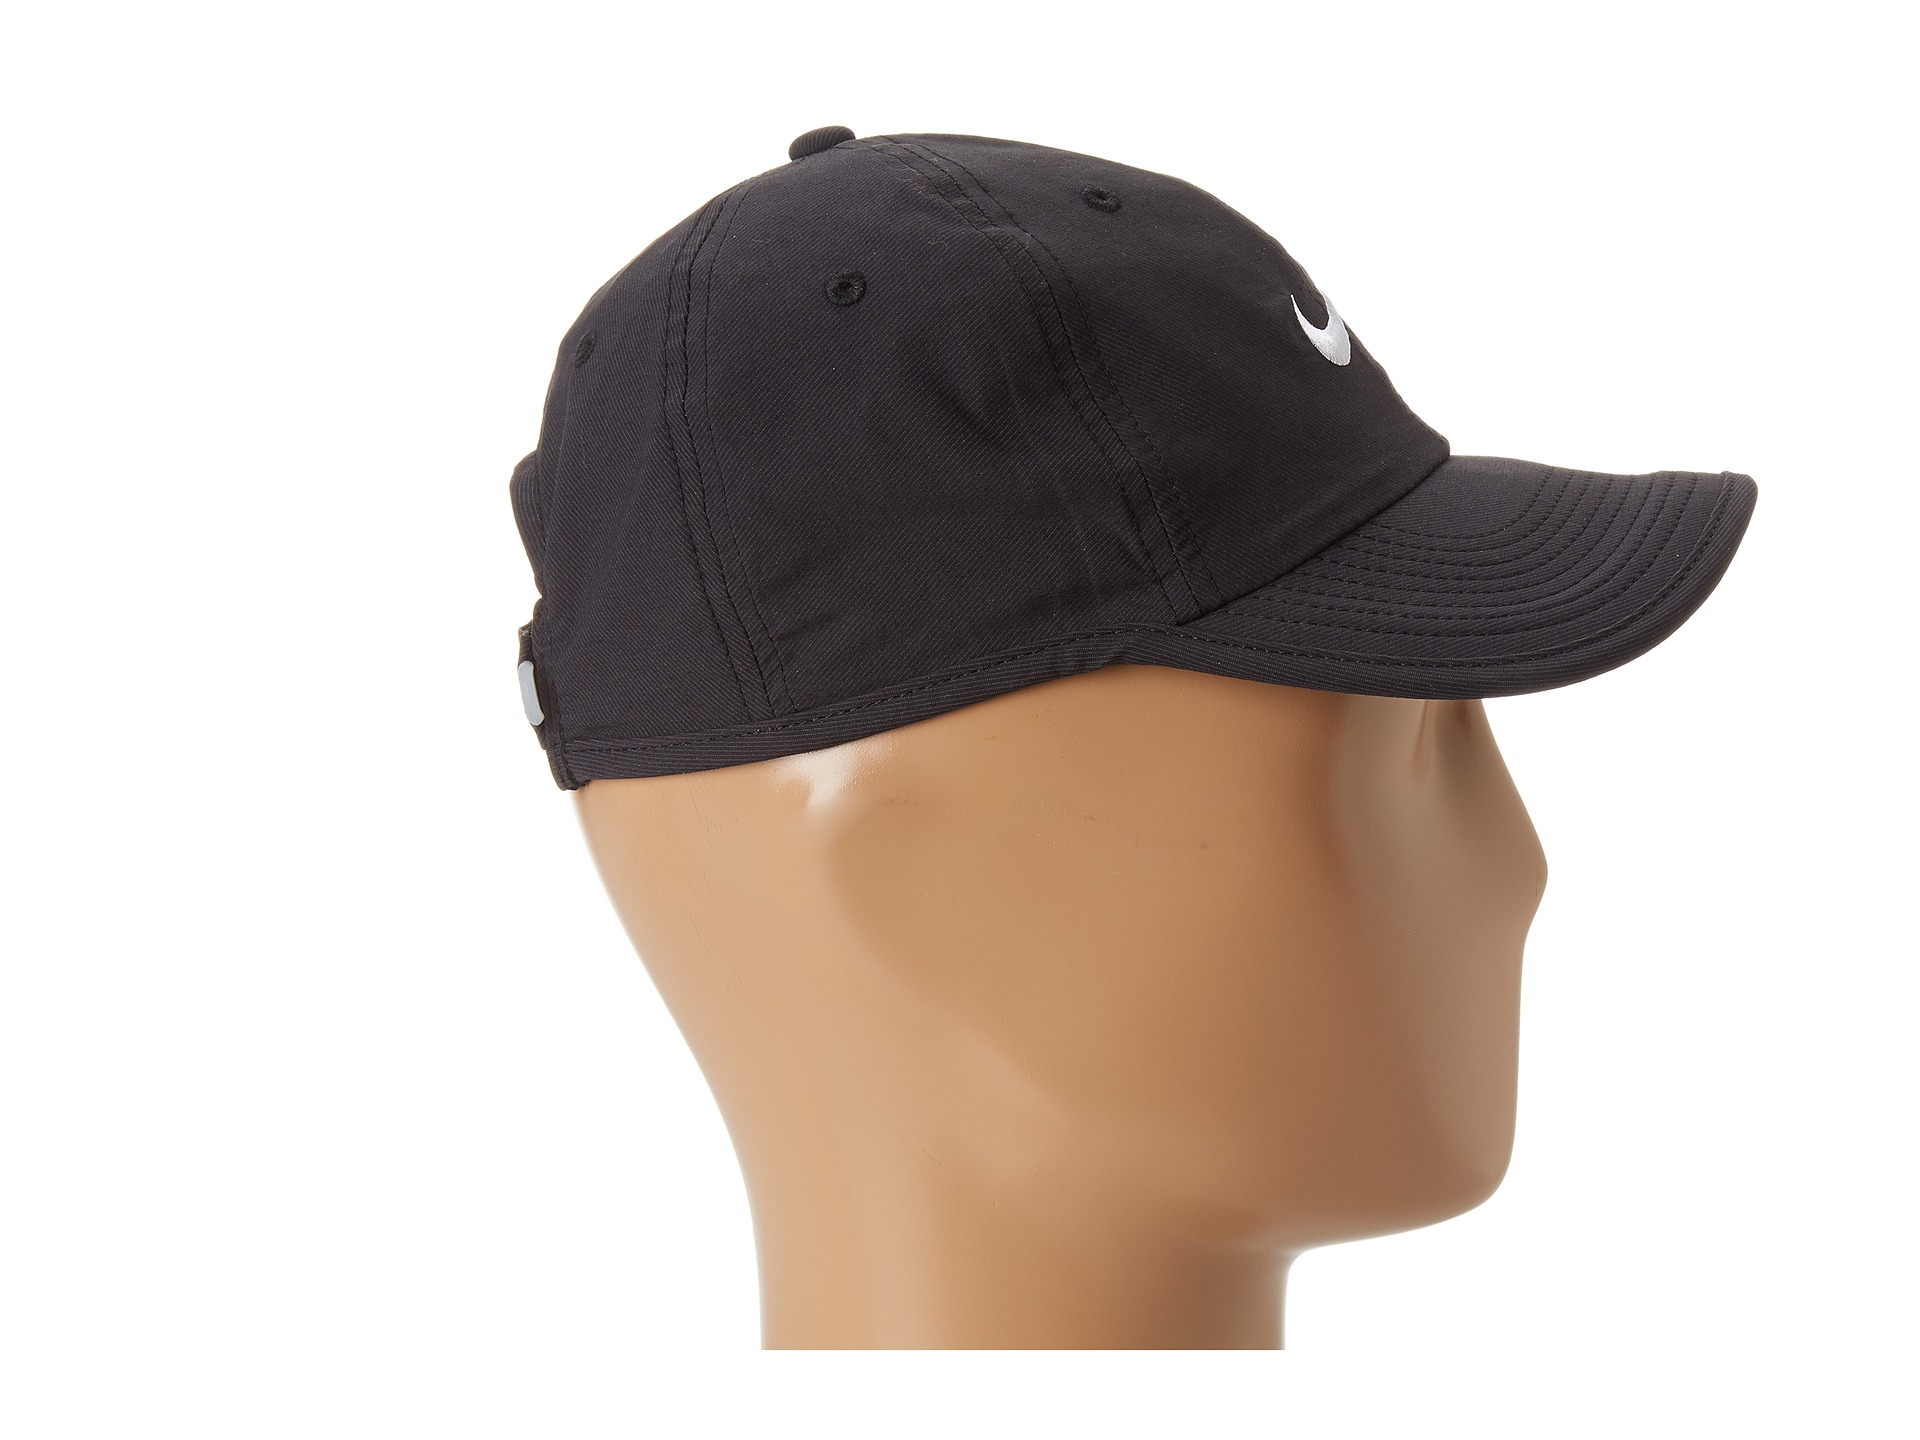 Lyst - Nike Heritage Df Twill Adjustable Cap in Black for Men 3a208d5dc99